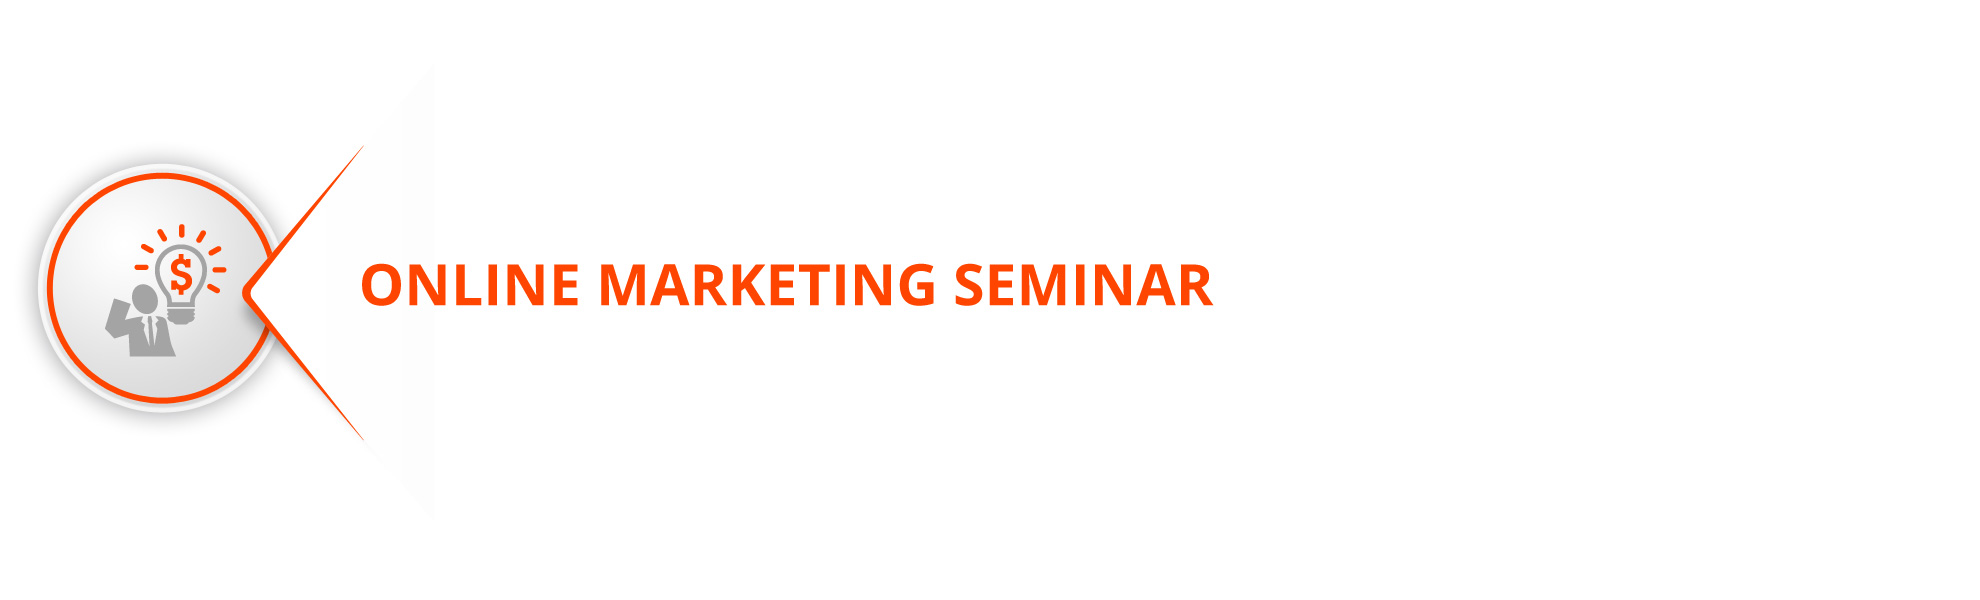 online-marketing-seminar-azobit